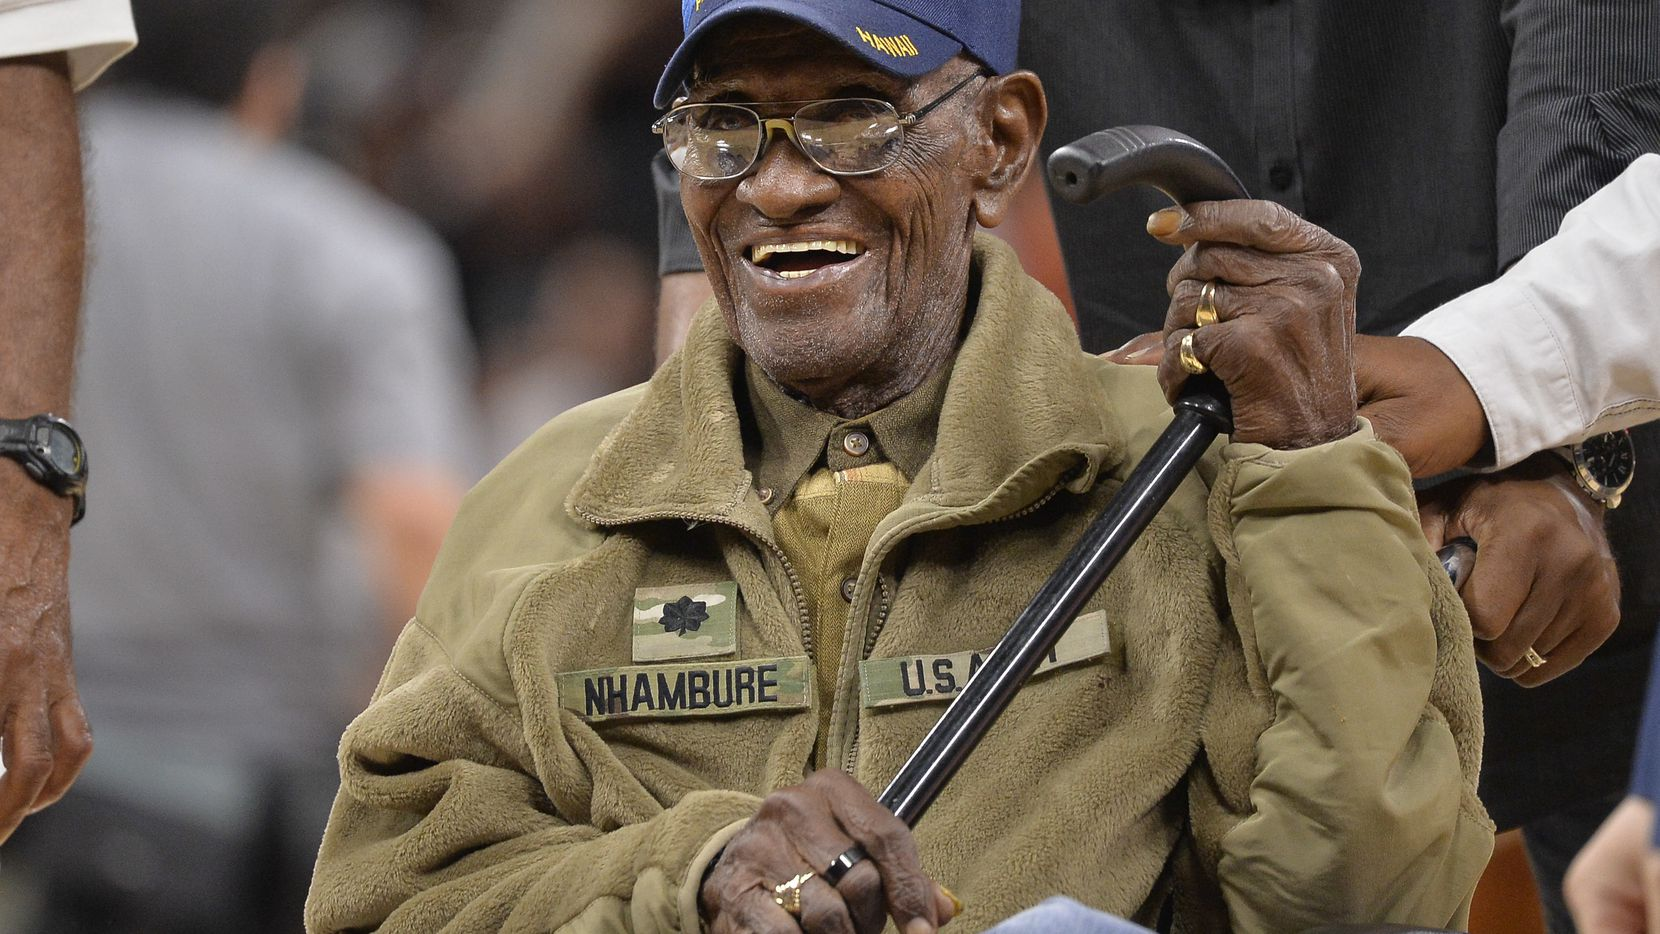 At age 111, America's oldest veteran is still smoking cigars